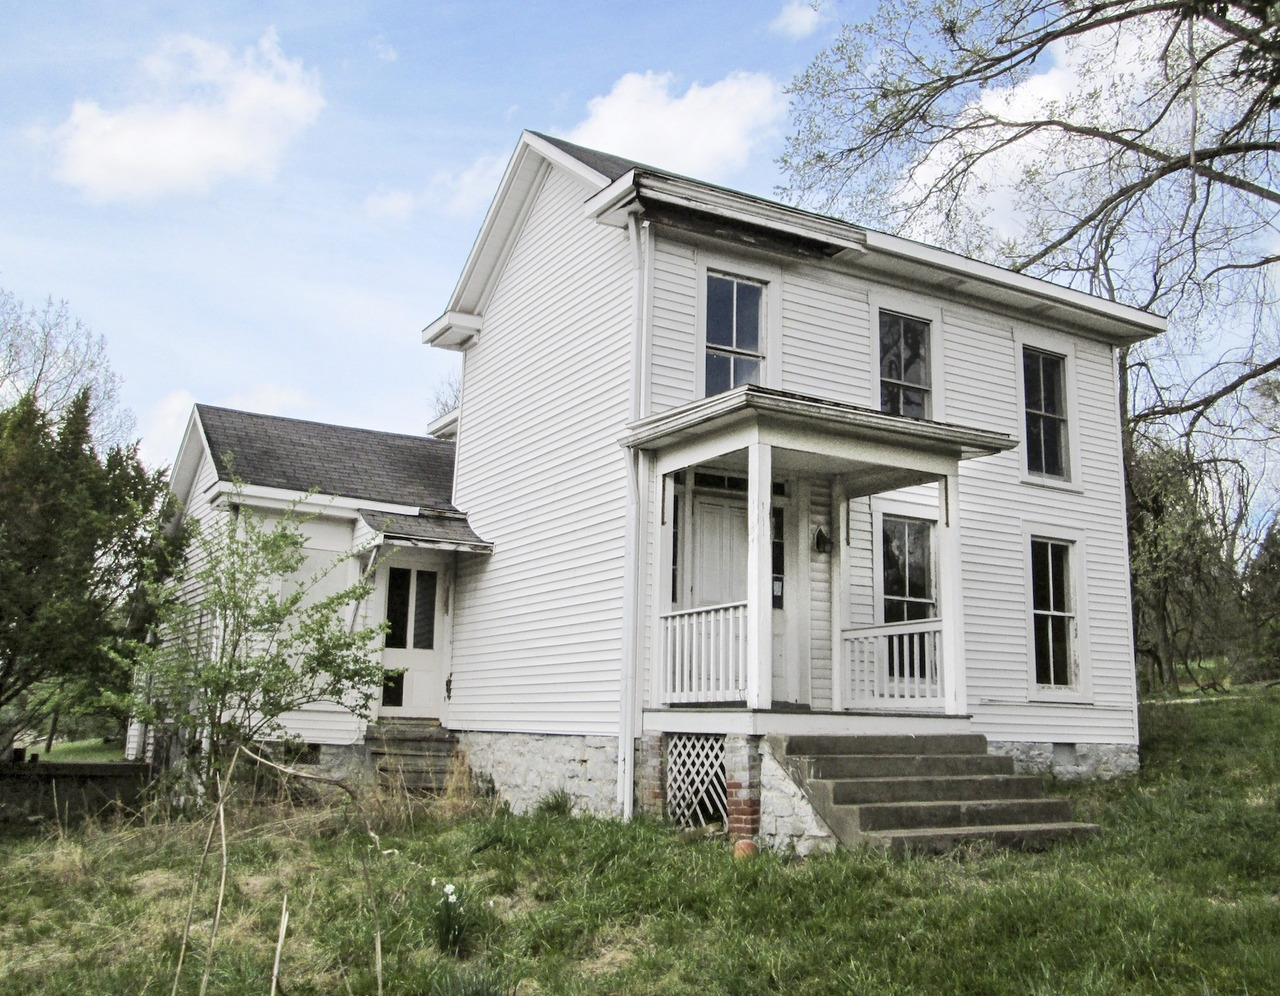 Italianate Farmhouse This Old House Kentucky Italianate For 9 990 Save This Old